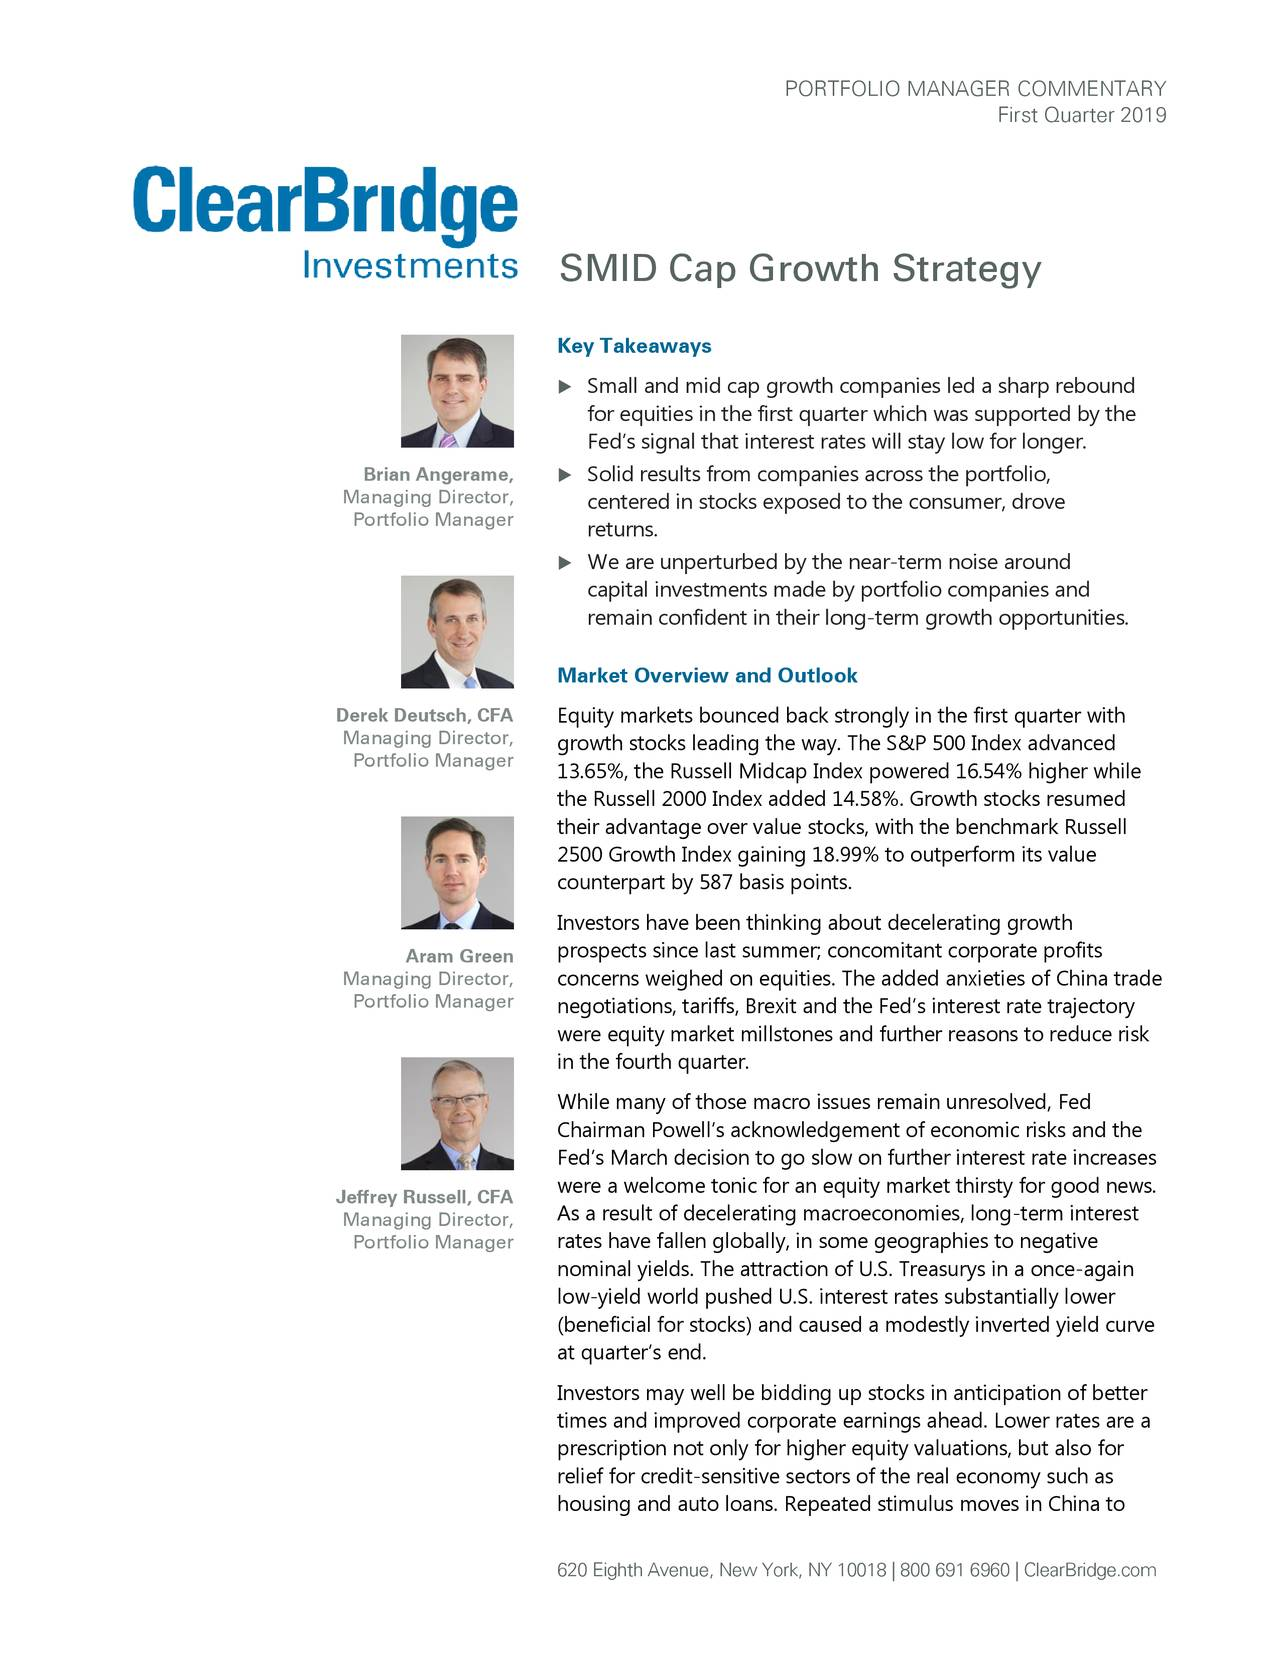 First Quarter 2019 SMID Cap Growth Strategy Key Takeaways  Small and mid cap growth companies led a sharp rebound for equities in the first quarter which was supported by the Fed's signal that interest rates will stay low for longer. Brian Angerame,  Solid results from companies across the portfolio, Managing Director, centered in stocks exposed to the consumer, drove Portfolio Manager returns.  We are unperturbed by the near -term noise around capital investments made by portfolio companies and remain confident in their long -term growth opportunities. Market Overview and Outlook Derek Deutsch, CFA Equity markets bounced back strongly in the first quarter with Managing Director, growth stocks leading the way. The S&P 500 Index advanced Portfolio Manager 13.65%, the Russell Midcap Index powered 16.54% higher while the Russell 2000 Index added 14.58%. Growth stocks resumed their advantage over value stocks, with the benchmark Russell 2500 Growth Index gaining 18.99% to outperform its value counterpart by 587 basis points. Investors have been thinking about decelerating growth prospects since last summer; concomitant corporate profits Aram Green Managing Director, concerns weighed on equities. The added anxieties of China trade Portfolio Manager negotiations, tariffs, Brexit and the Fed's interest rate trajectory were equity market millstones and further reasons to reduce risk in the fourth quarter. While many of those macro issues remain unresolved, Fed Chairman Powell's acknowledgement of economic risks and the Fed's March decision to go slow on further interest rate increases Jeffrey Russell, CFA were a welcome tonic for an equity market thirsty for good news. Managing Director, As a result of decelerating macroeconomies, long-term interest Portfolio Manager rates have fallen globally, in some geographies to negative nominal yields. The attraction of U.S. Treasurys in a once-again low-yield world pushed U.S. interest rates substantially lower (beneficial for stocks